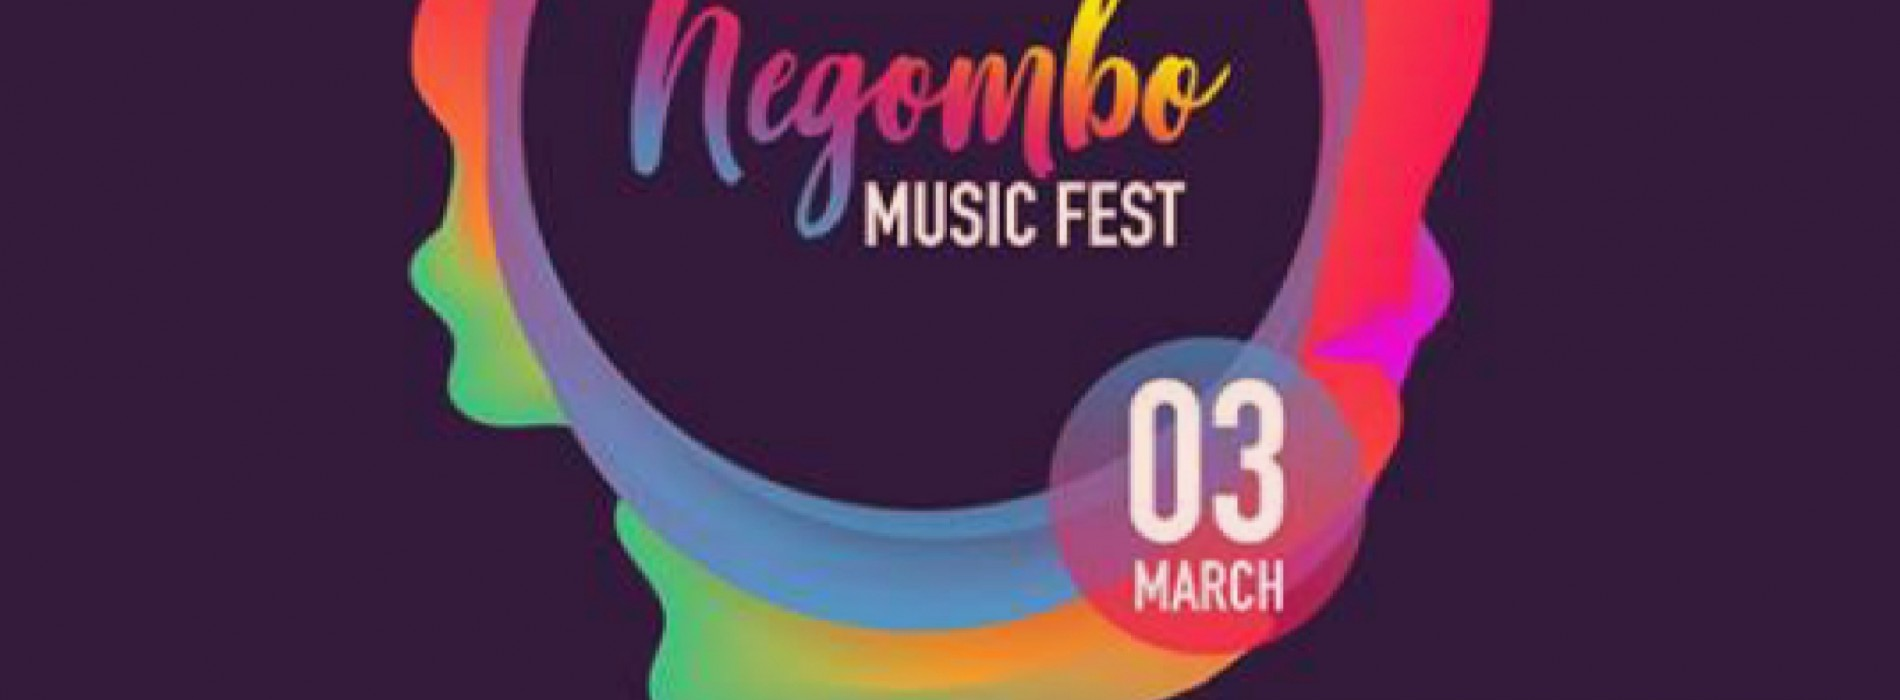 We've Got A Few More Days Till The Big Day In Negombo!